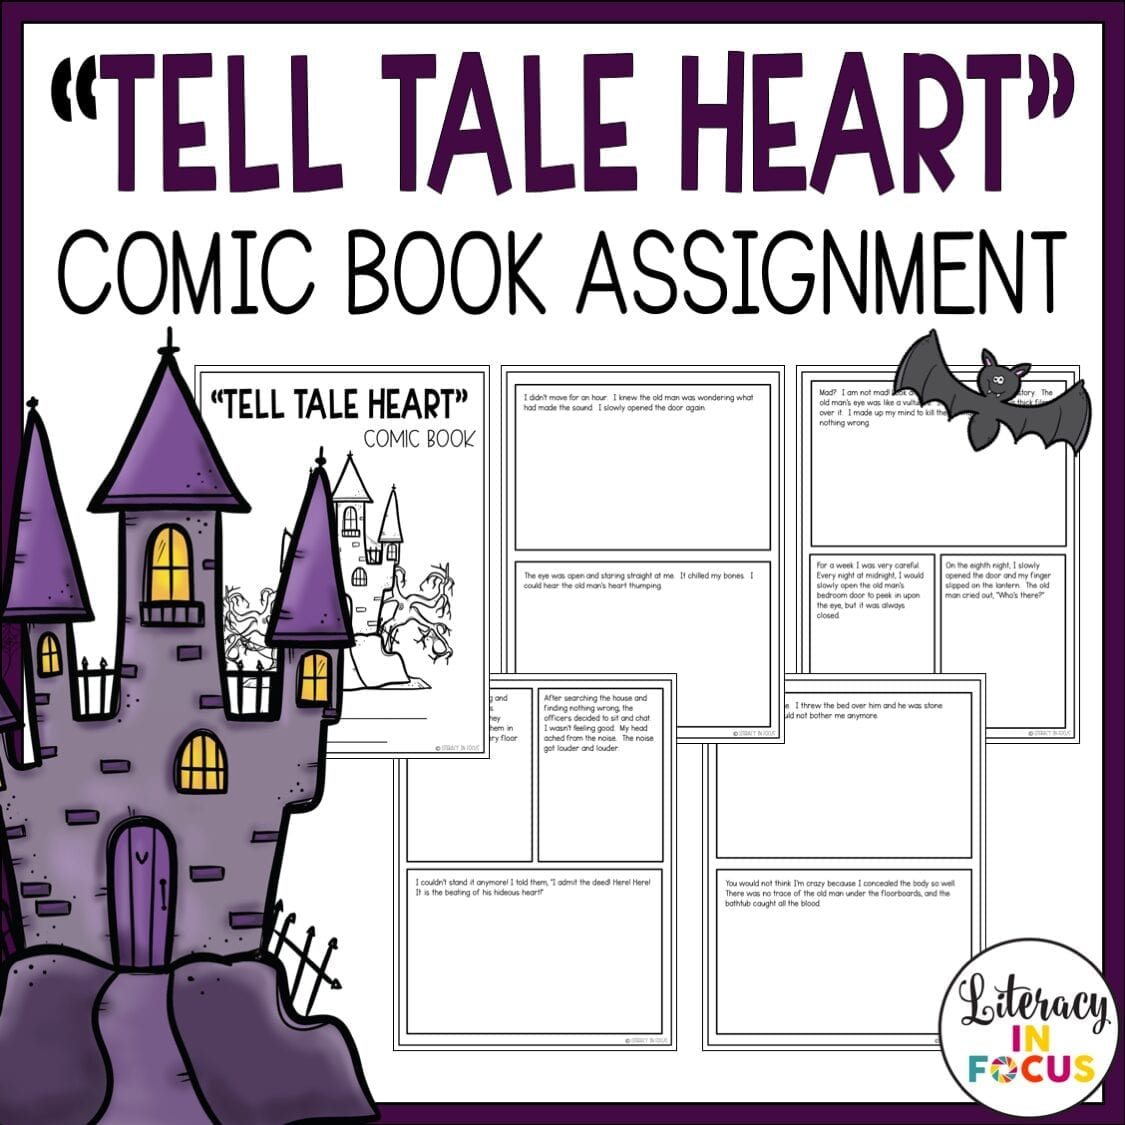 Tell Tale Heart Summary Comic Book